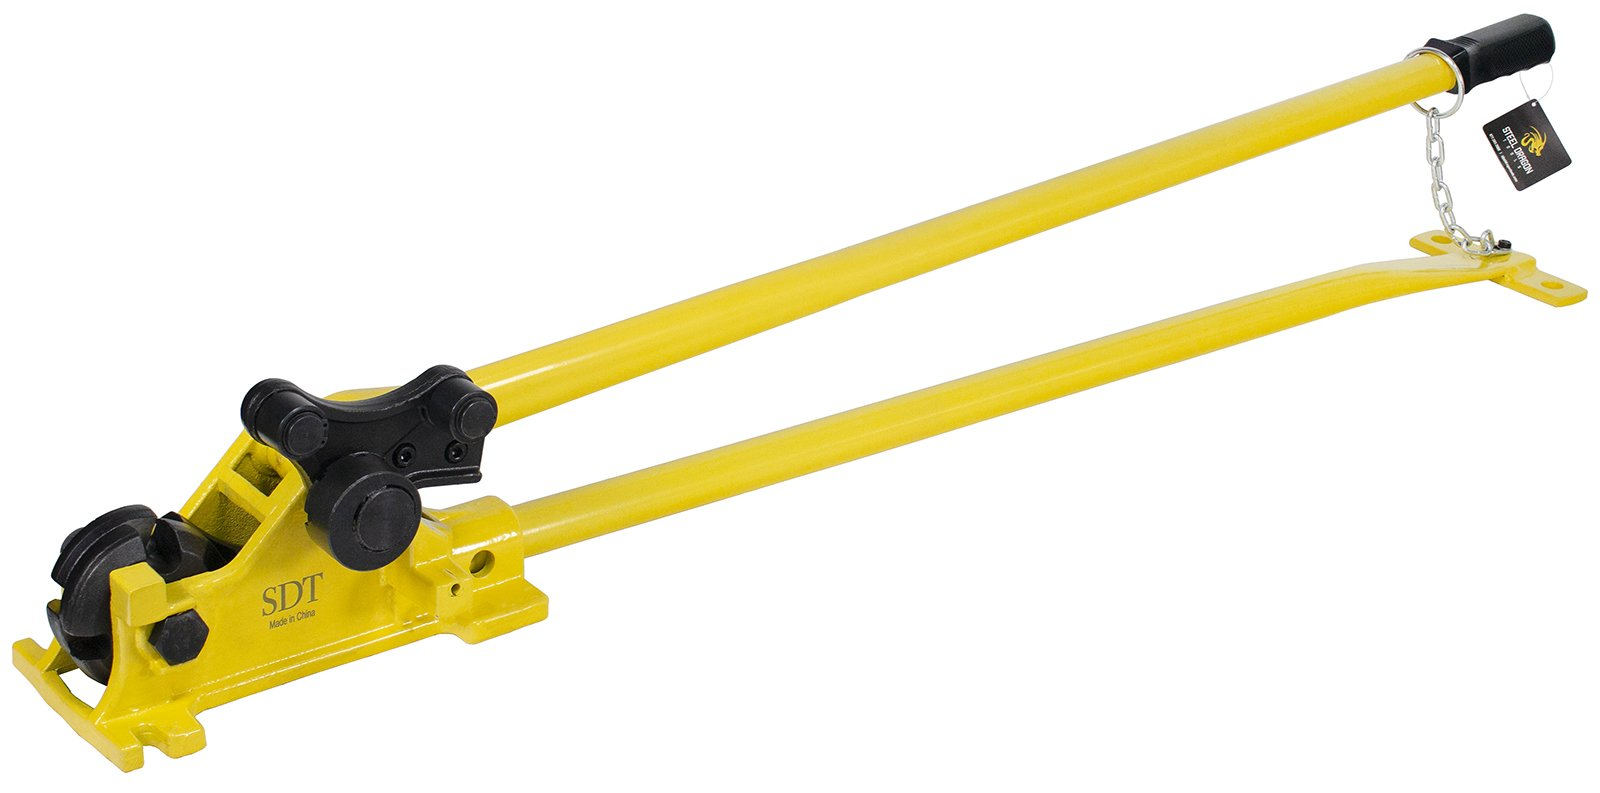 Steel Dragon Tools RBC625 5/8'' Manual Rebar Cutter and Bender by Steel Dragon Tools